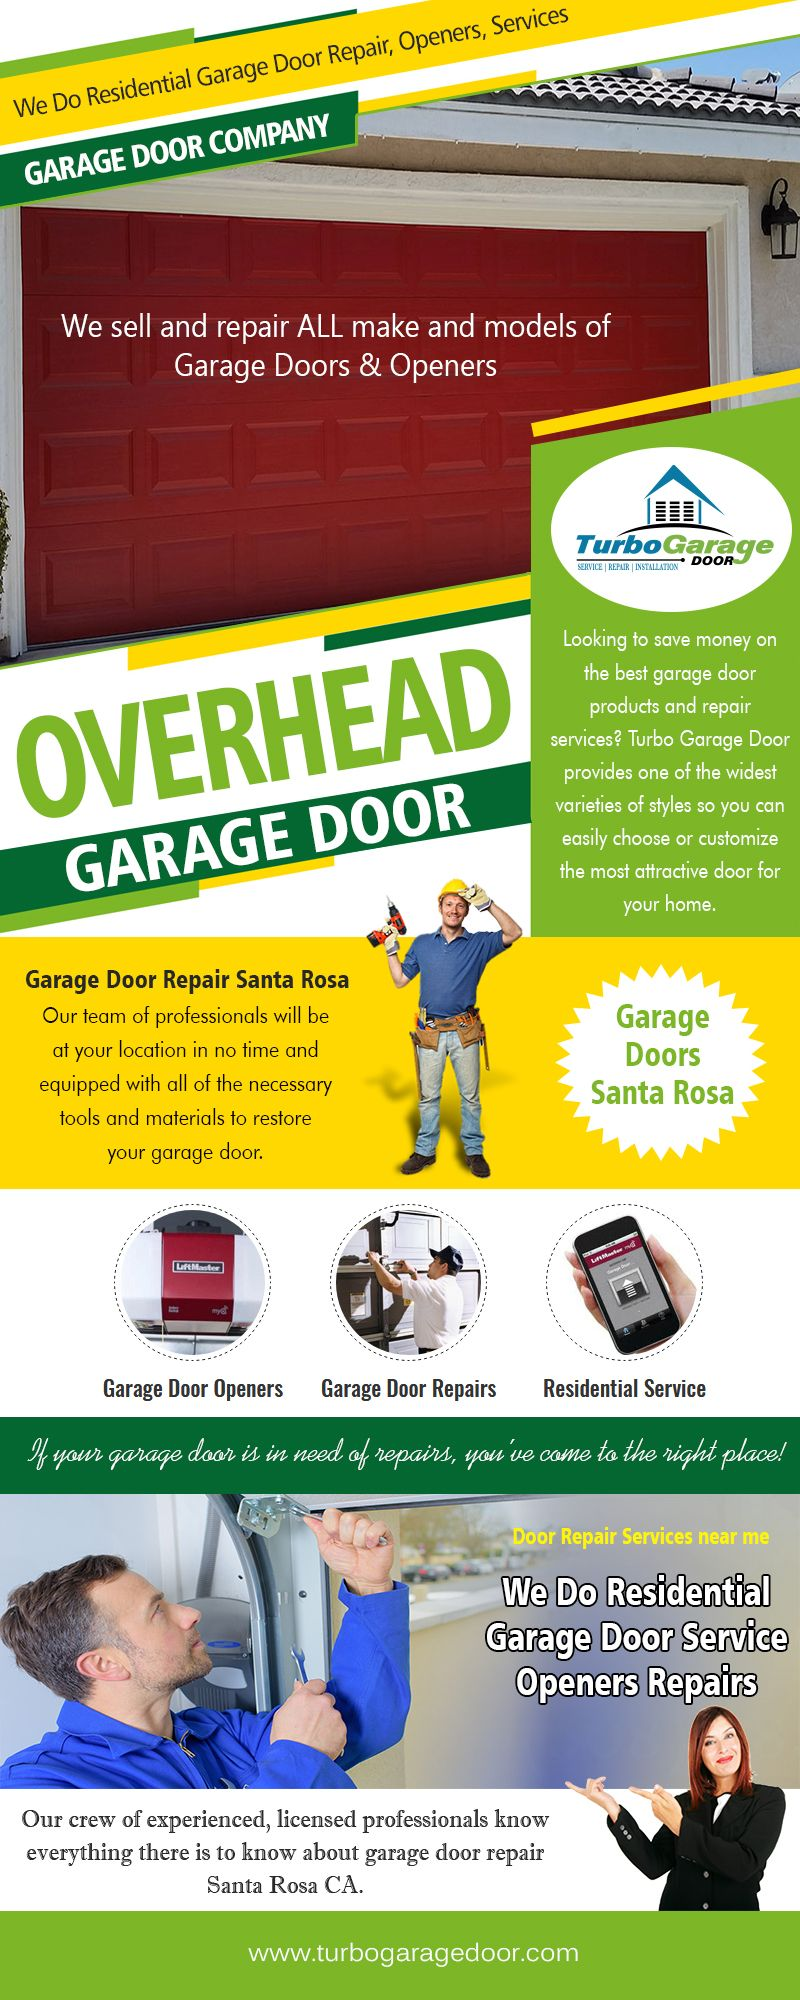 Overhead Garage Door In Santa Rosa For An Excellent Repair Which You Can Expect Overhead Garage Door Door Repair Garage Door Repair Service